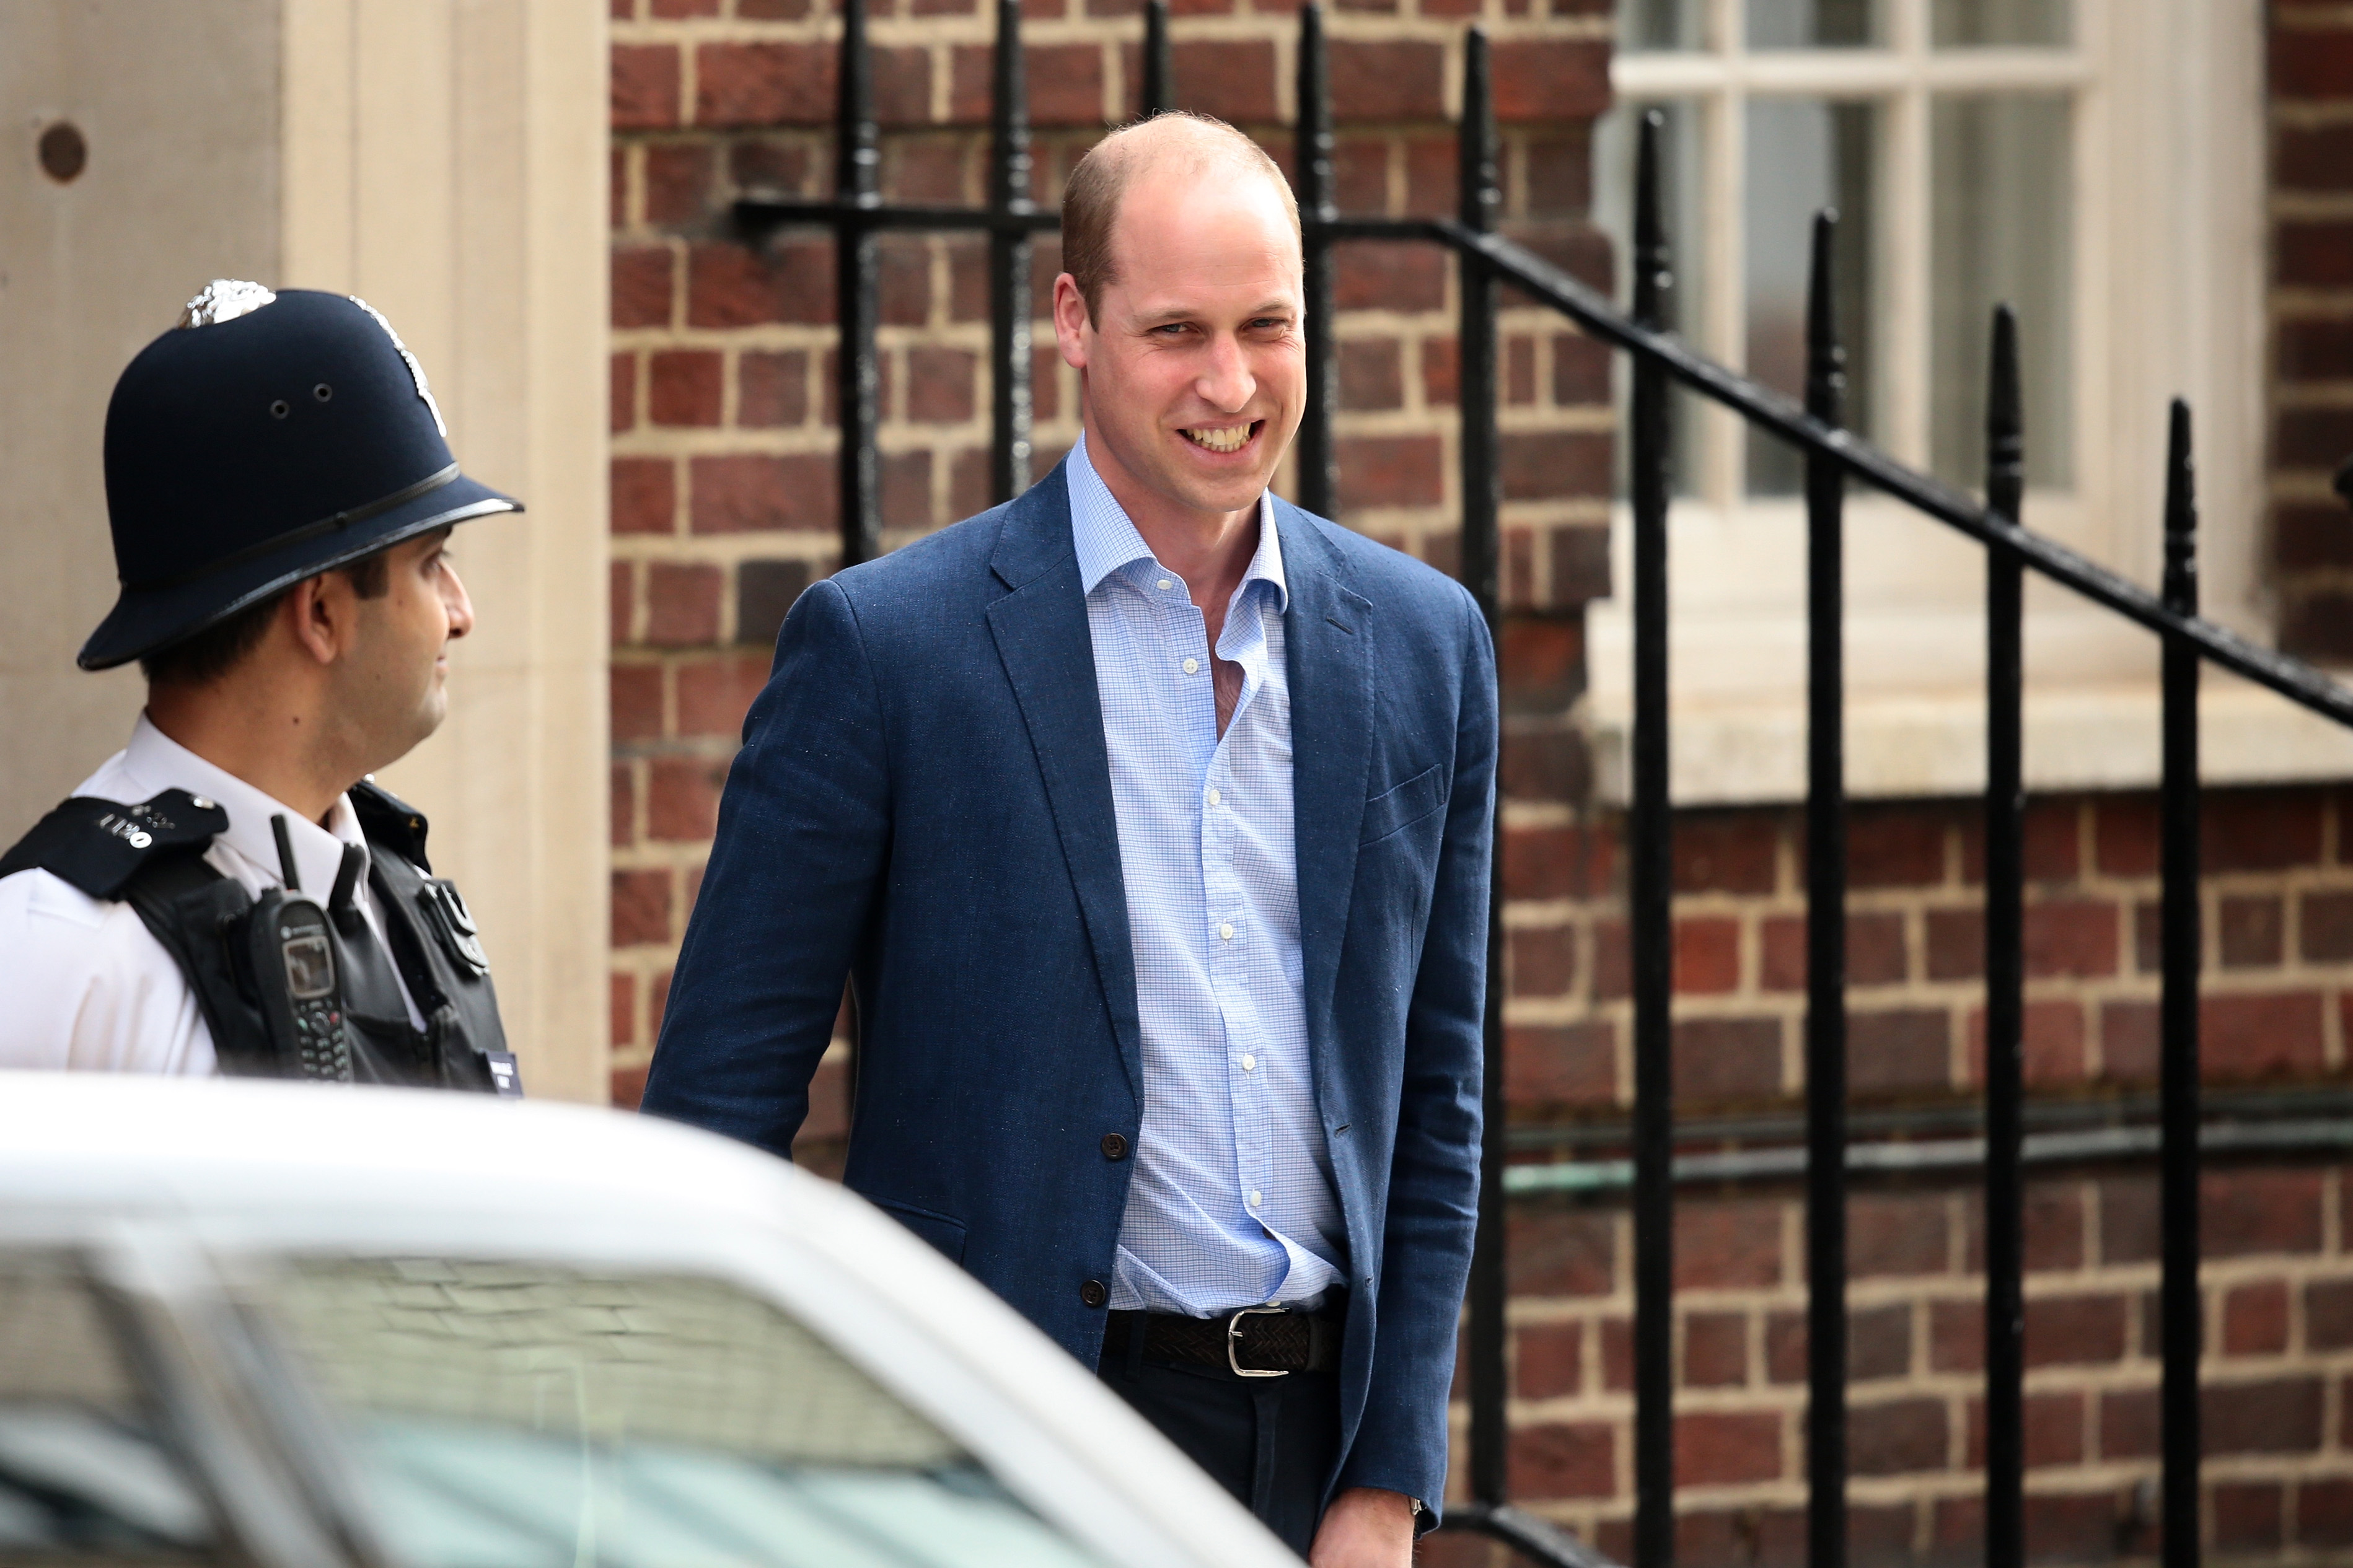 Prince-William-Set-To-Make-History-With-Trip-To-Israel